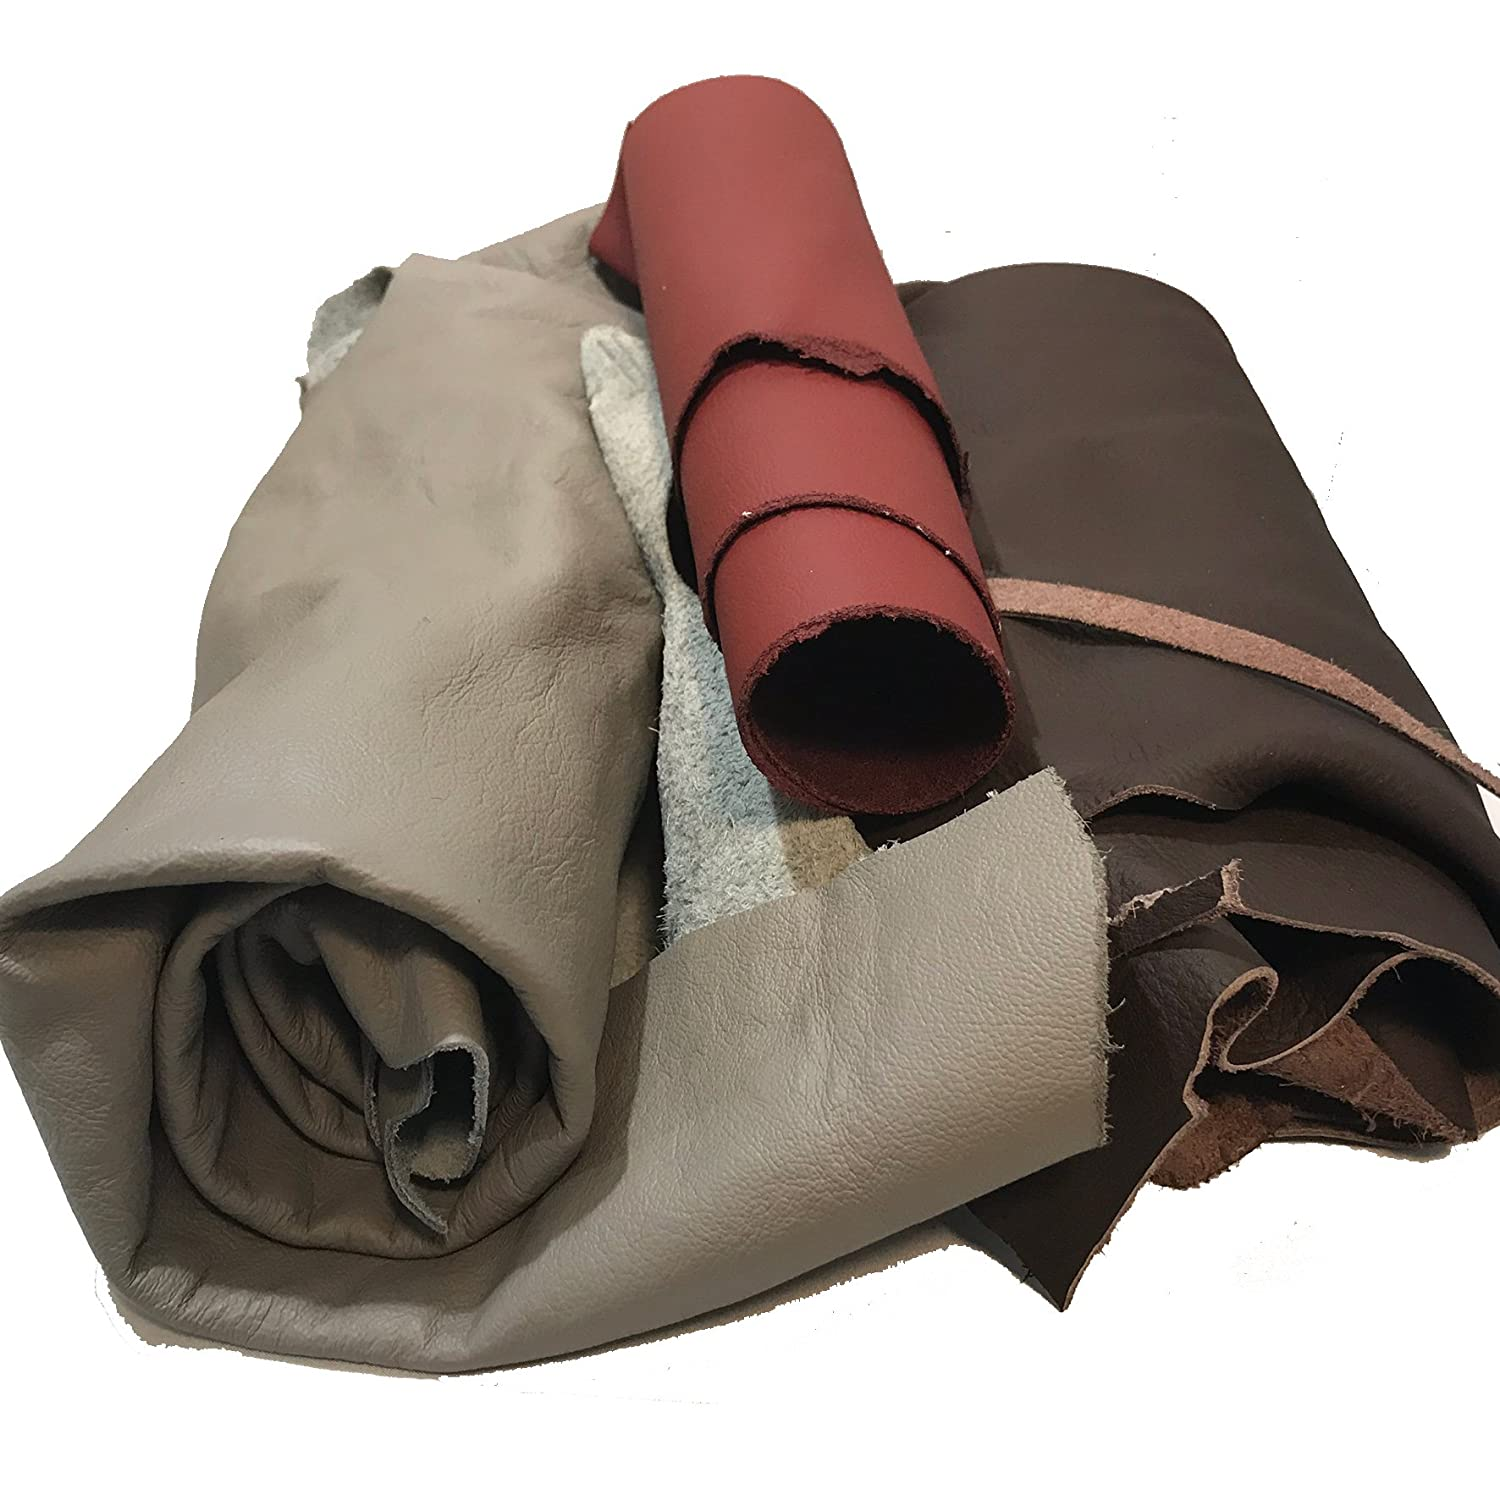 Leather Scraps: Sheets of leather for crafts. Various sizes, colors and shapes. 2-5 pieces per pack - 2 Lbs Memory Cross 4336862331